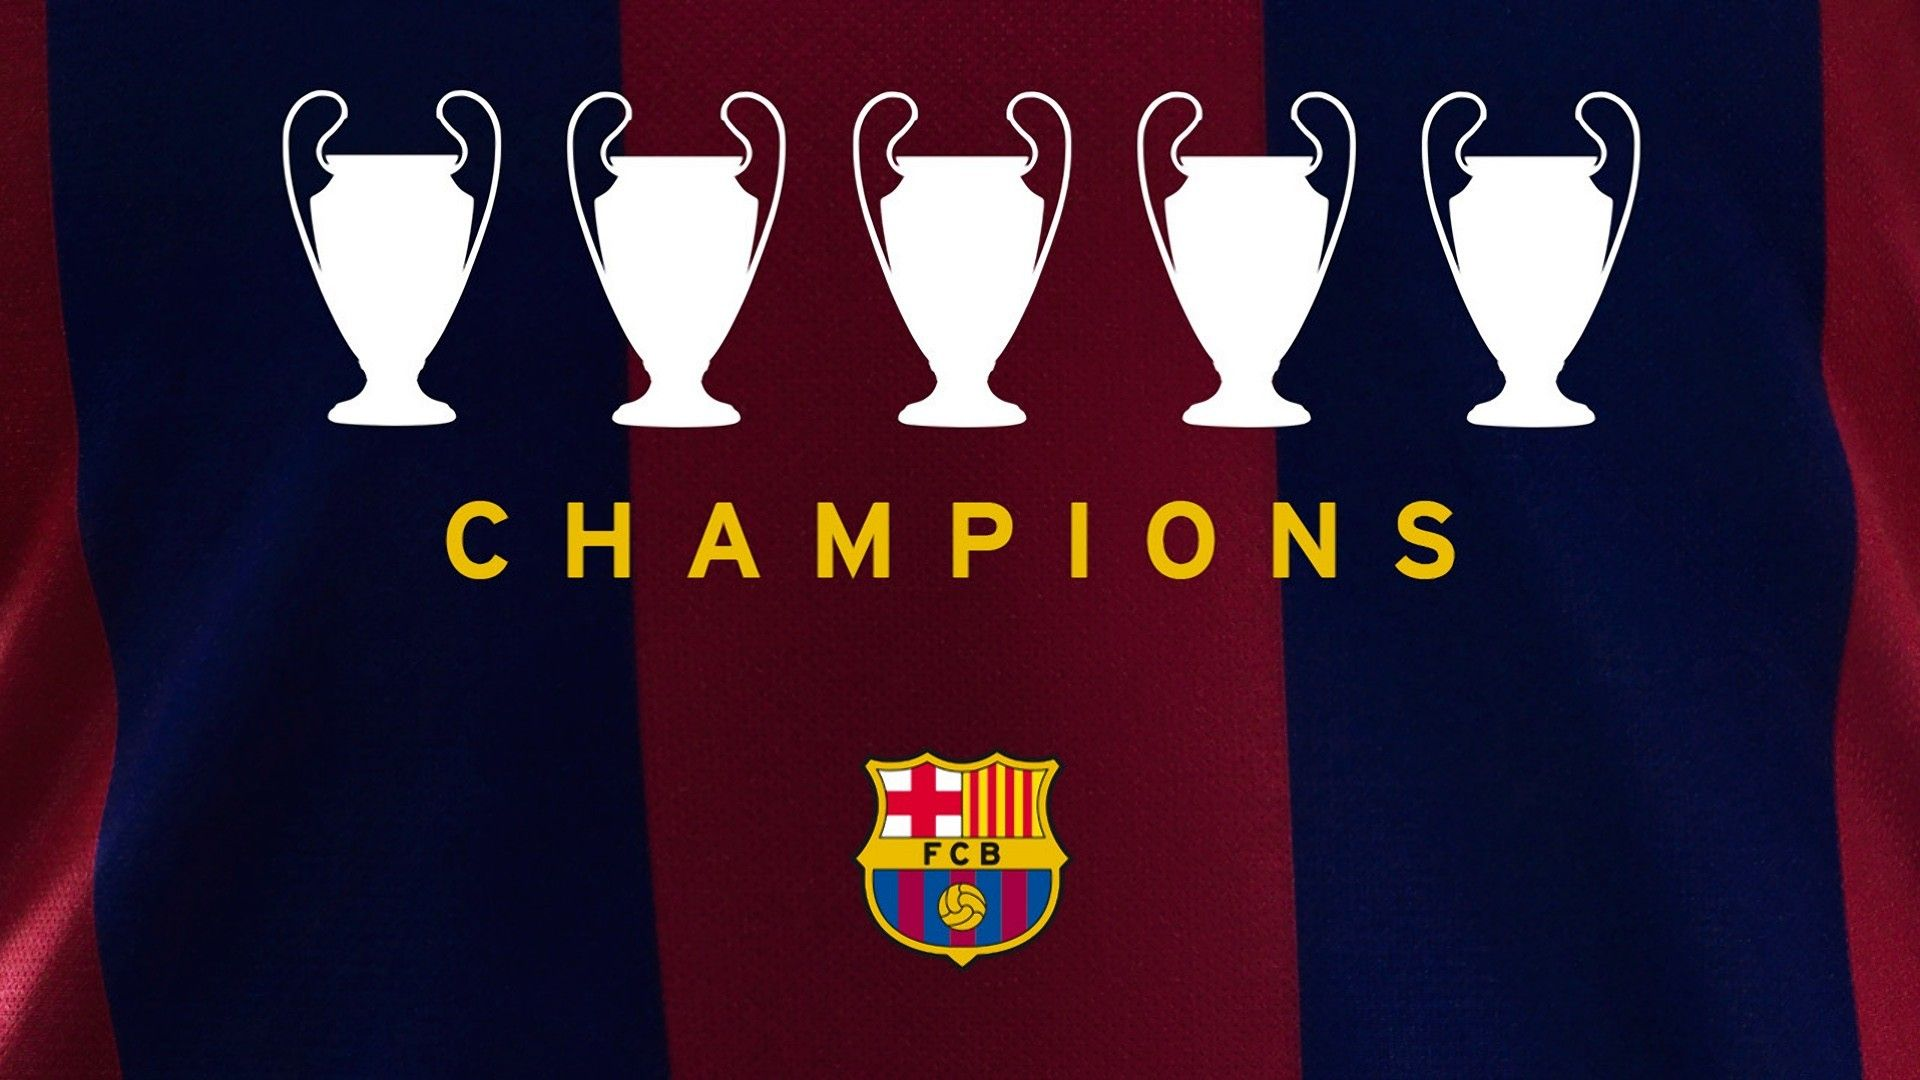 Fc Barcelona Wallpaper (74+ images)